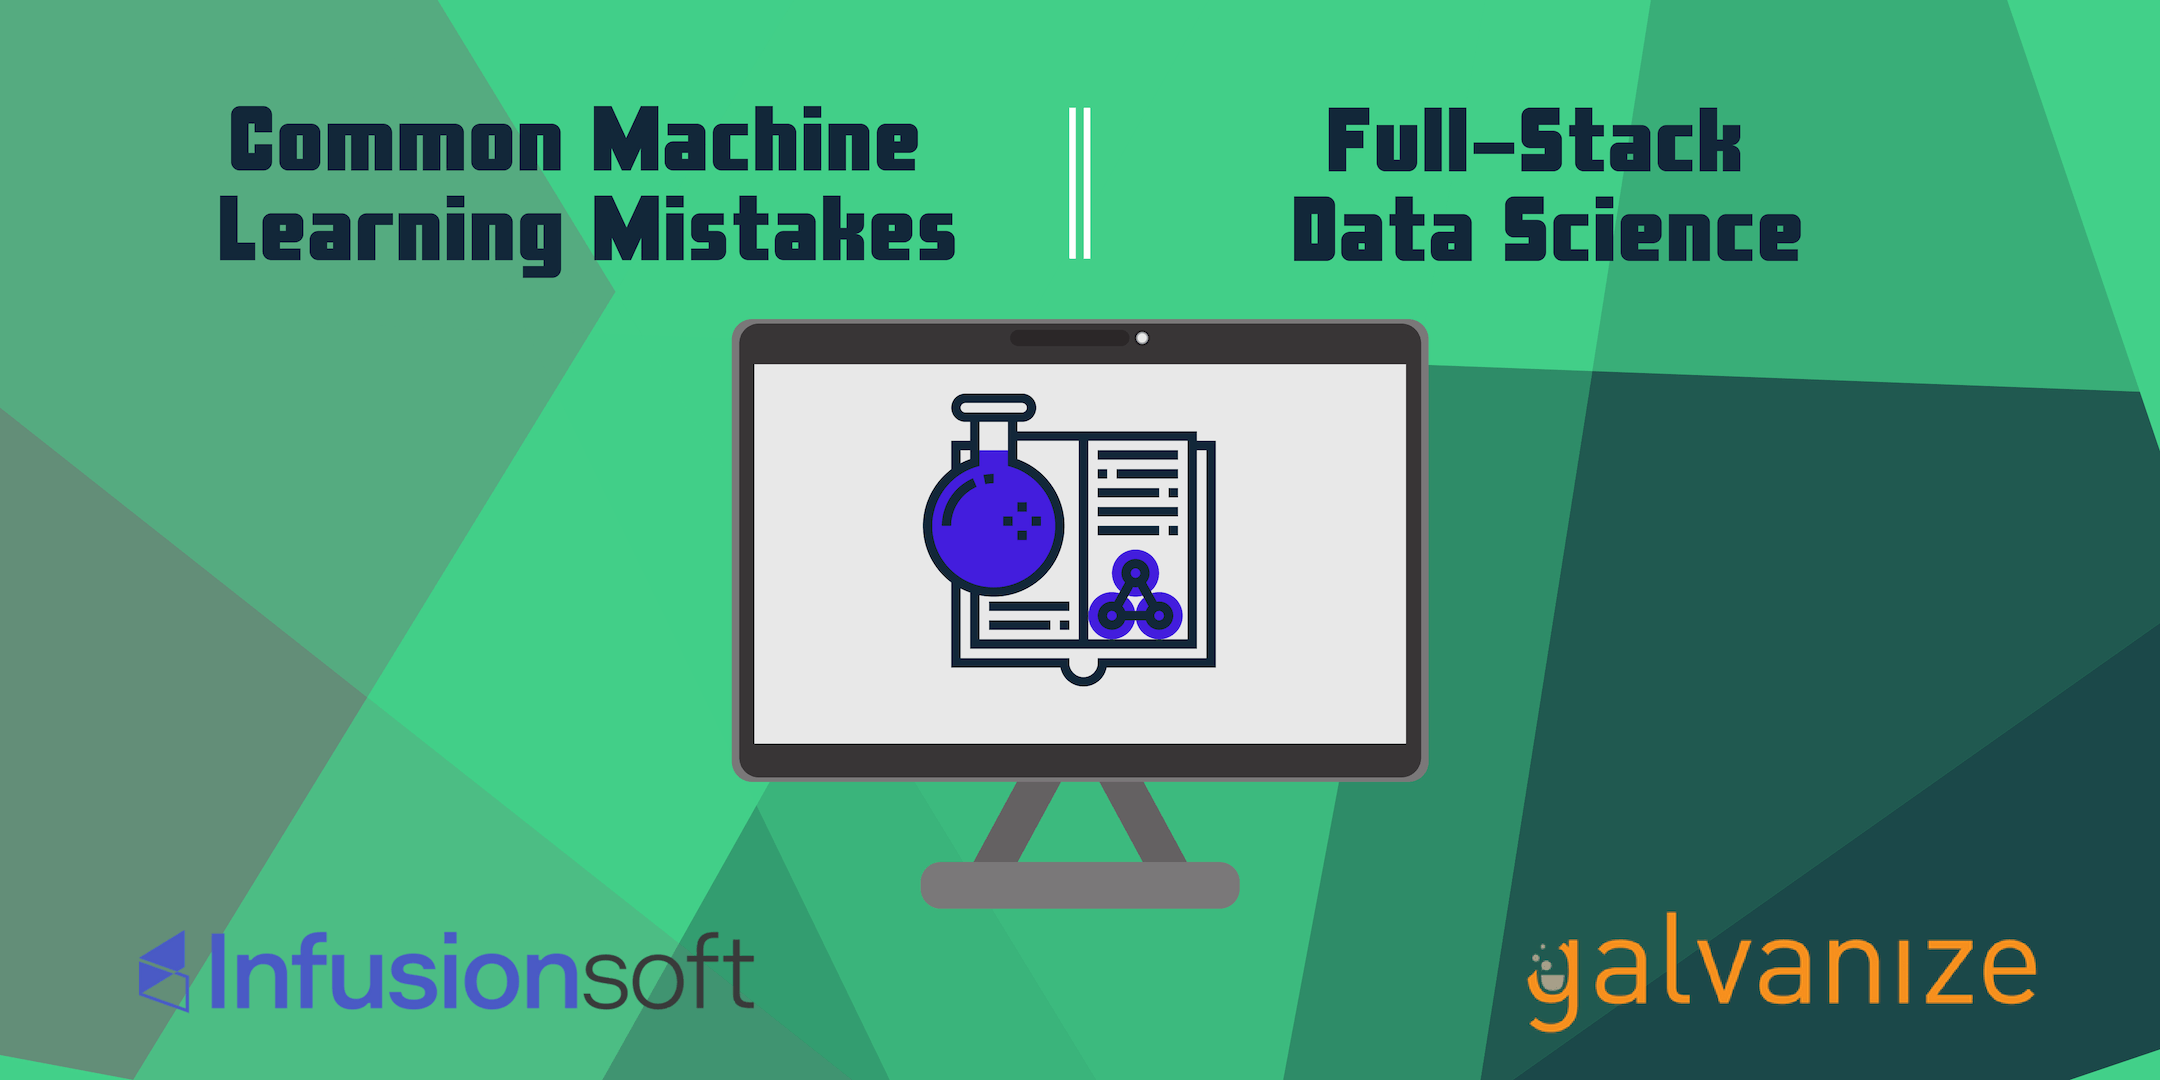 Common Machine Learning Mistakes & Full-Stack Data Science at Infusionsoft